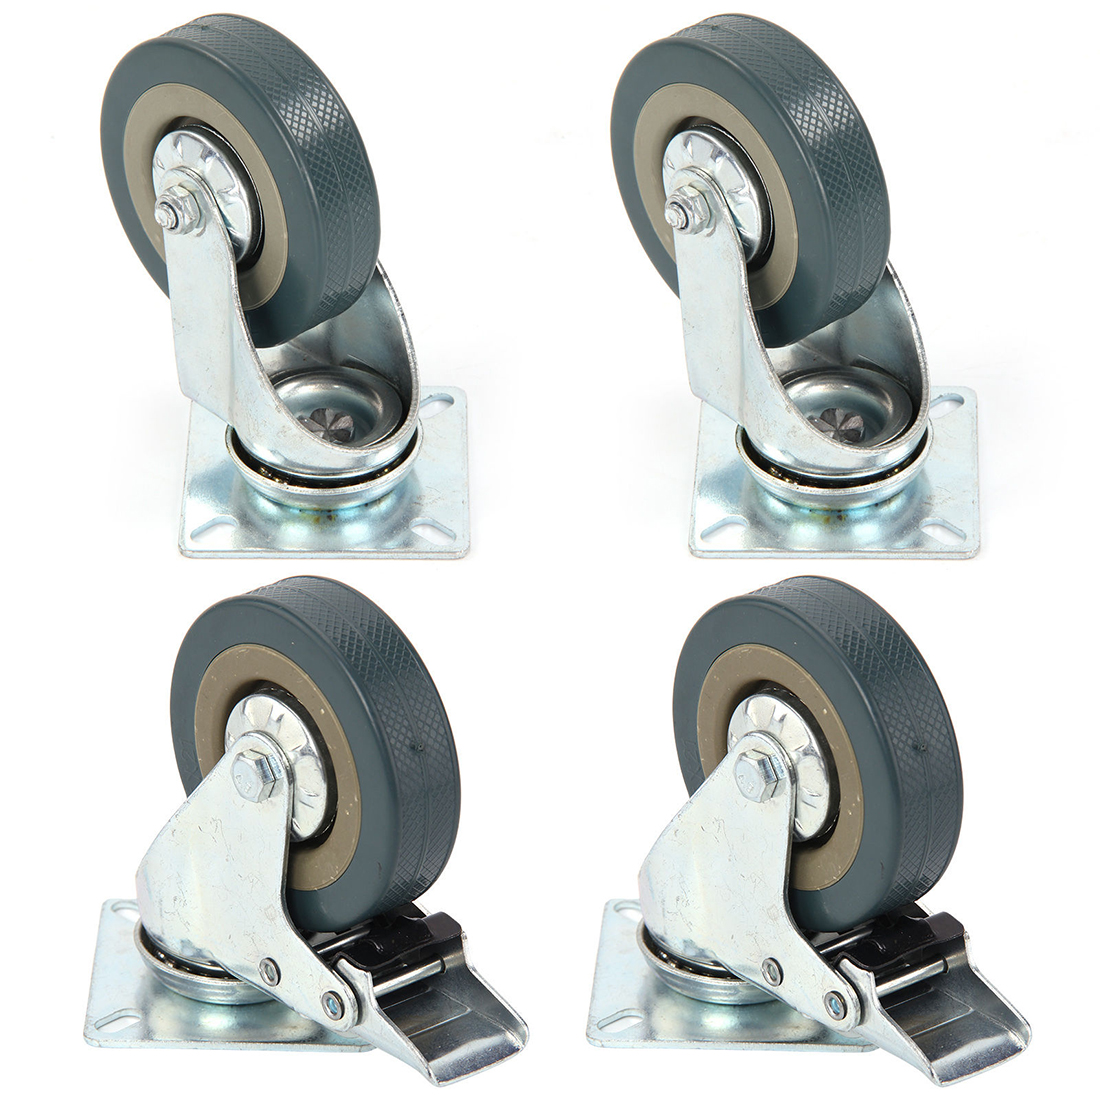 1 Set of Heavy Duty 75x21mm Rubber Swivel Castor Wheels Trolley Caster Brake 50KGModel:2 with brake +2without brake new 4 swivel wheels caster industrial castor universal wheel artificial rubber heavy casters brake 360 degree rolling castors